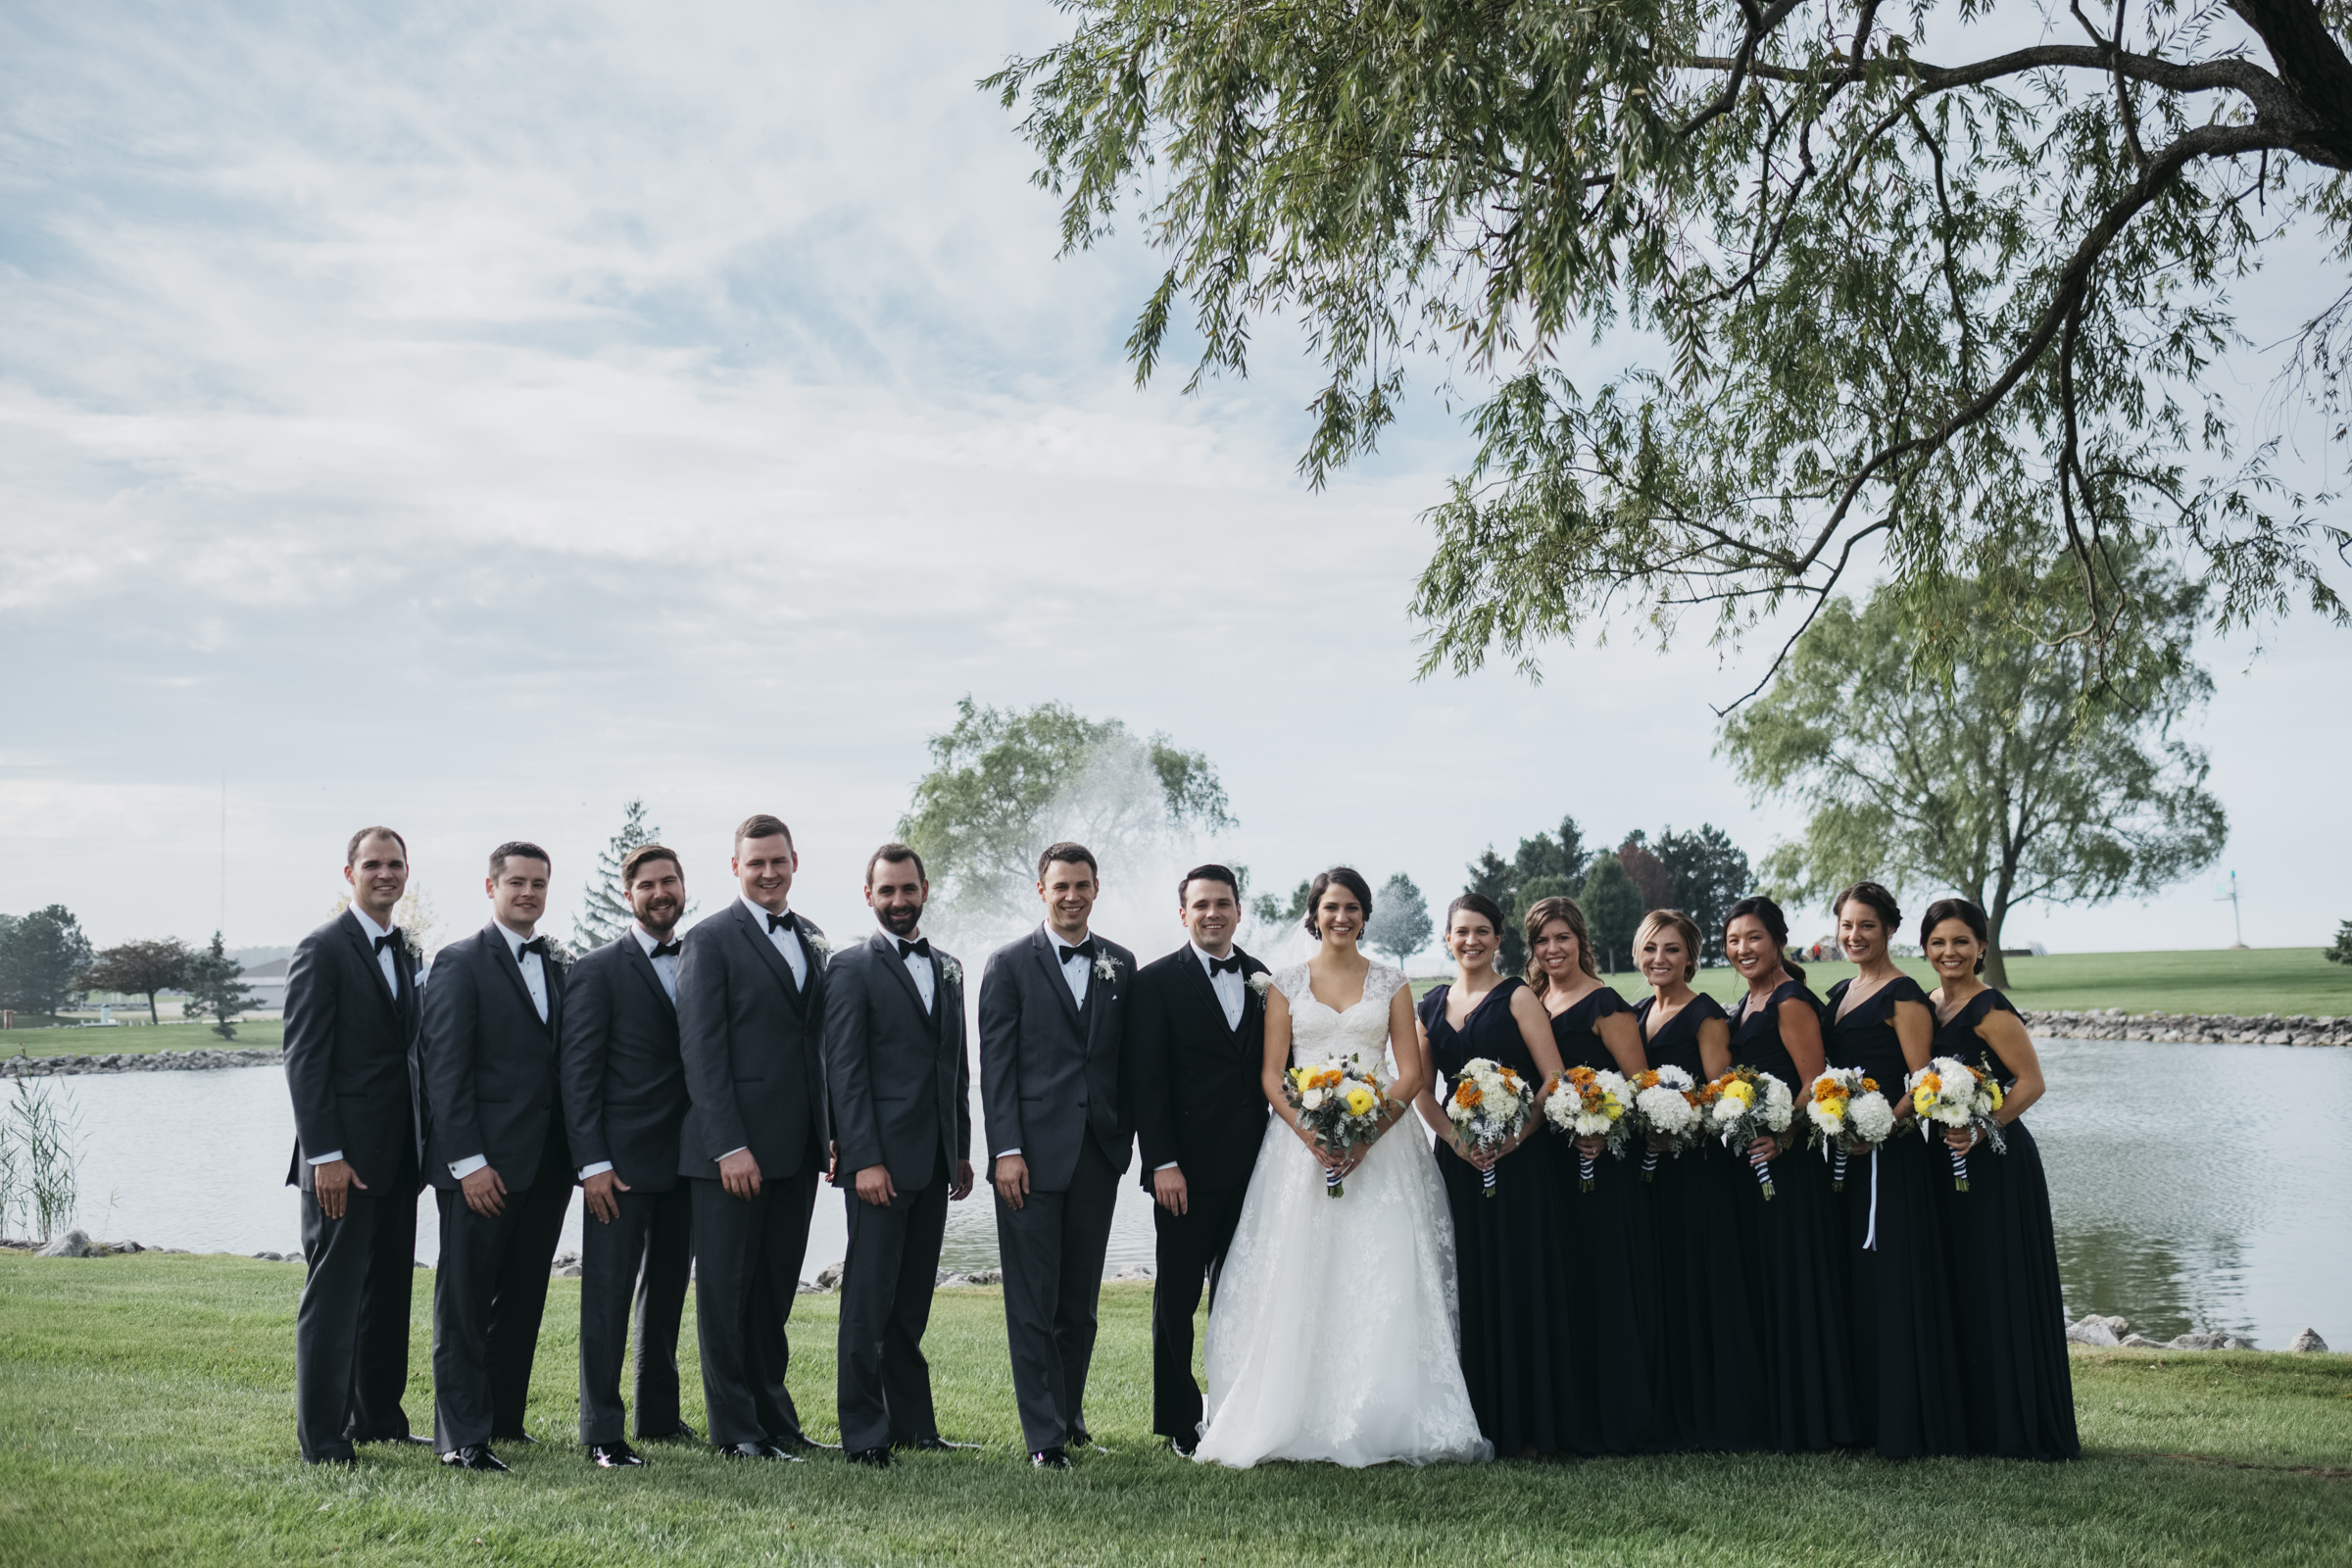 Bride and groom stand with their bridal party at the edge of the water in Maumee Ohio